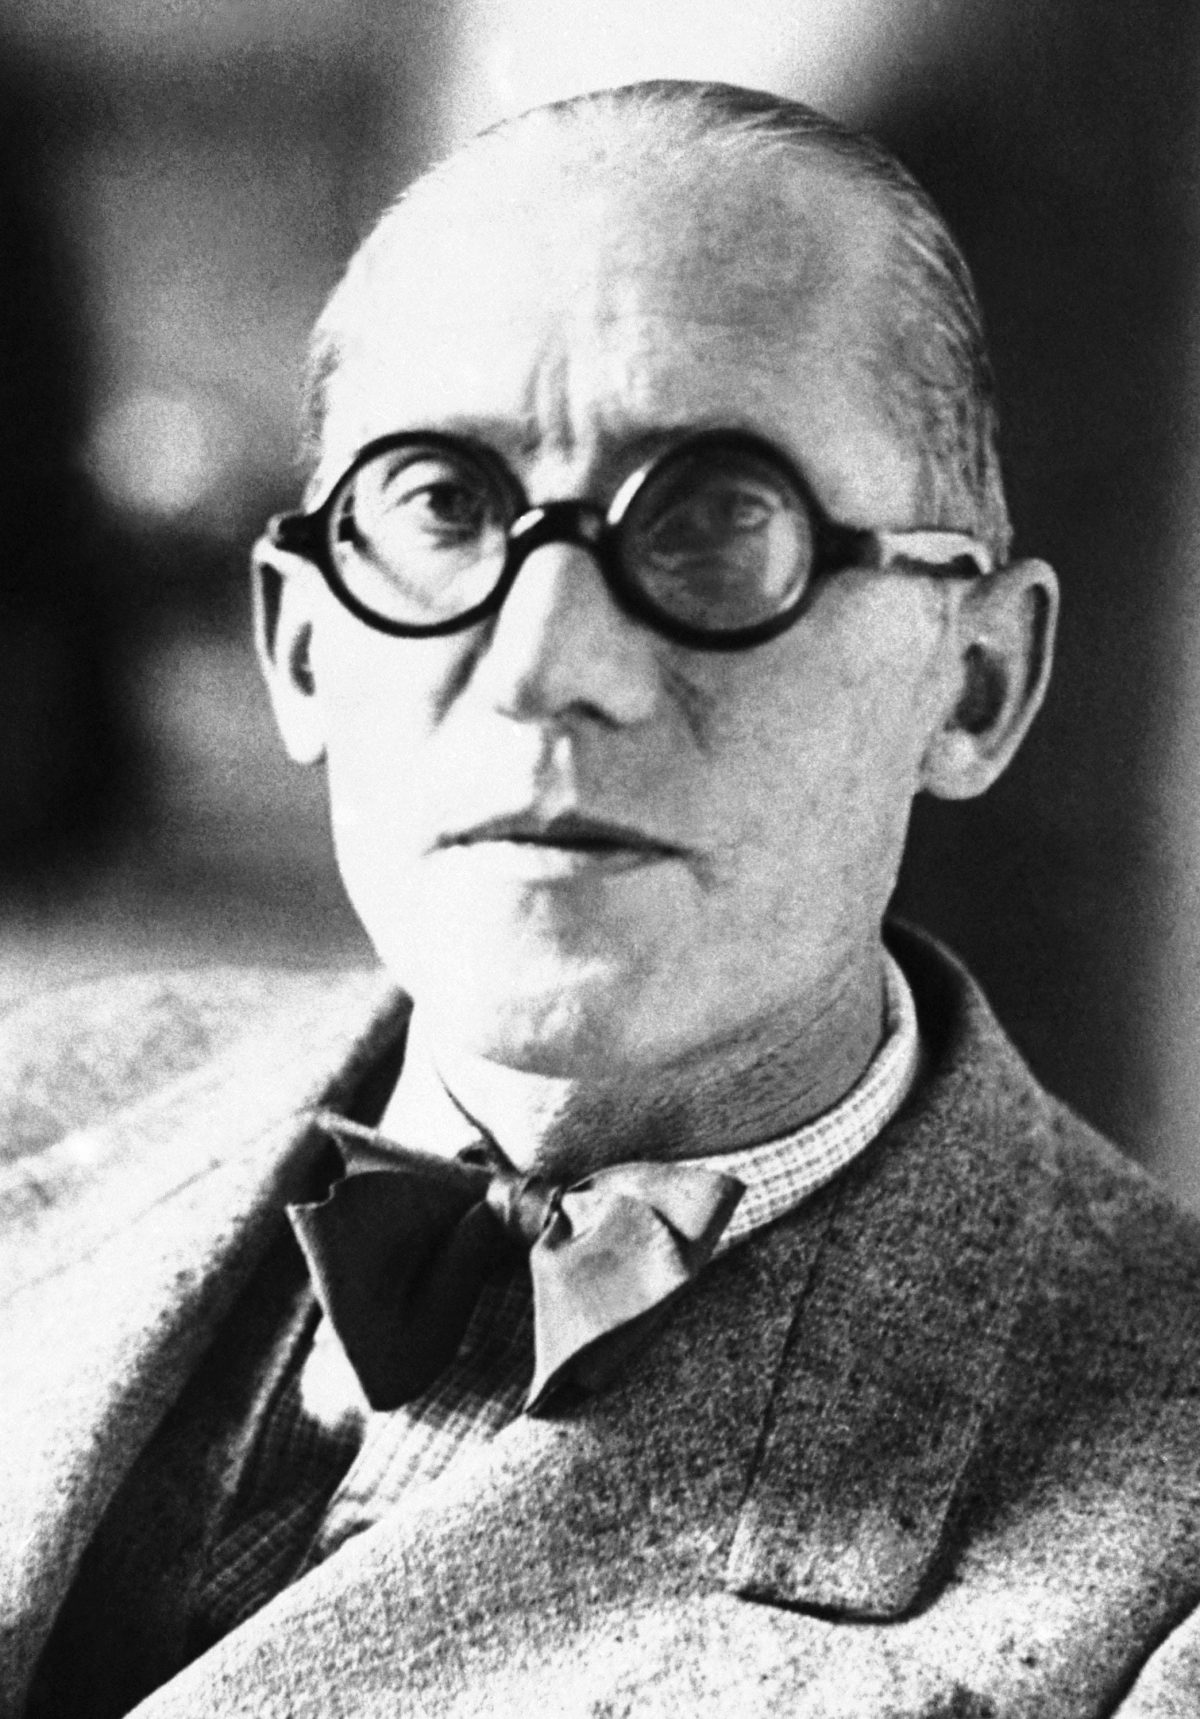 A genius visionary, the French architect Le Corbusier le corbusier A genius visionary, the Franco-swiss architect Le Corbusier Le Corbusier 1200x1719